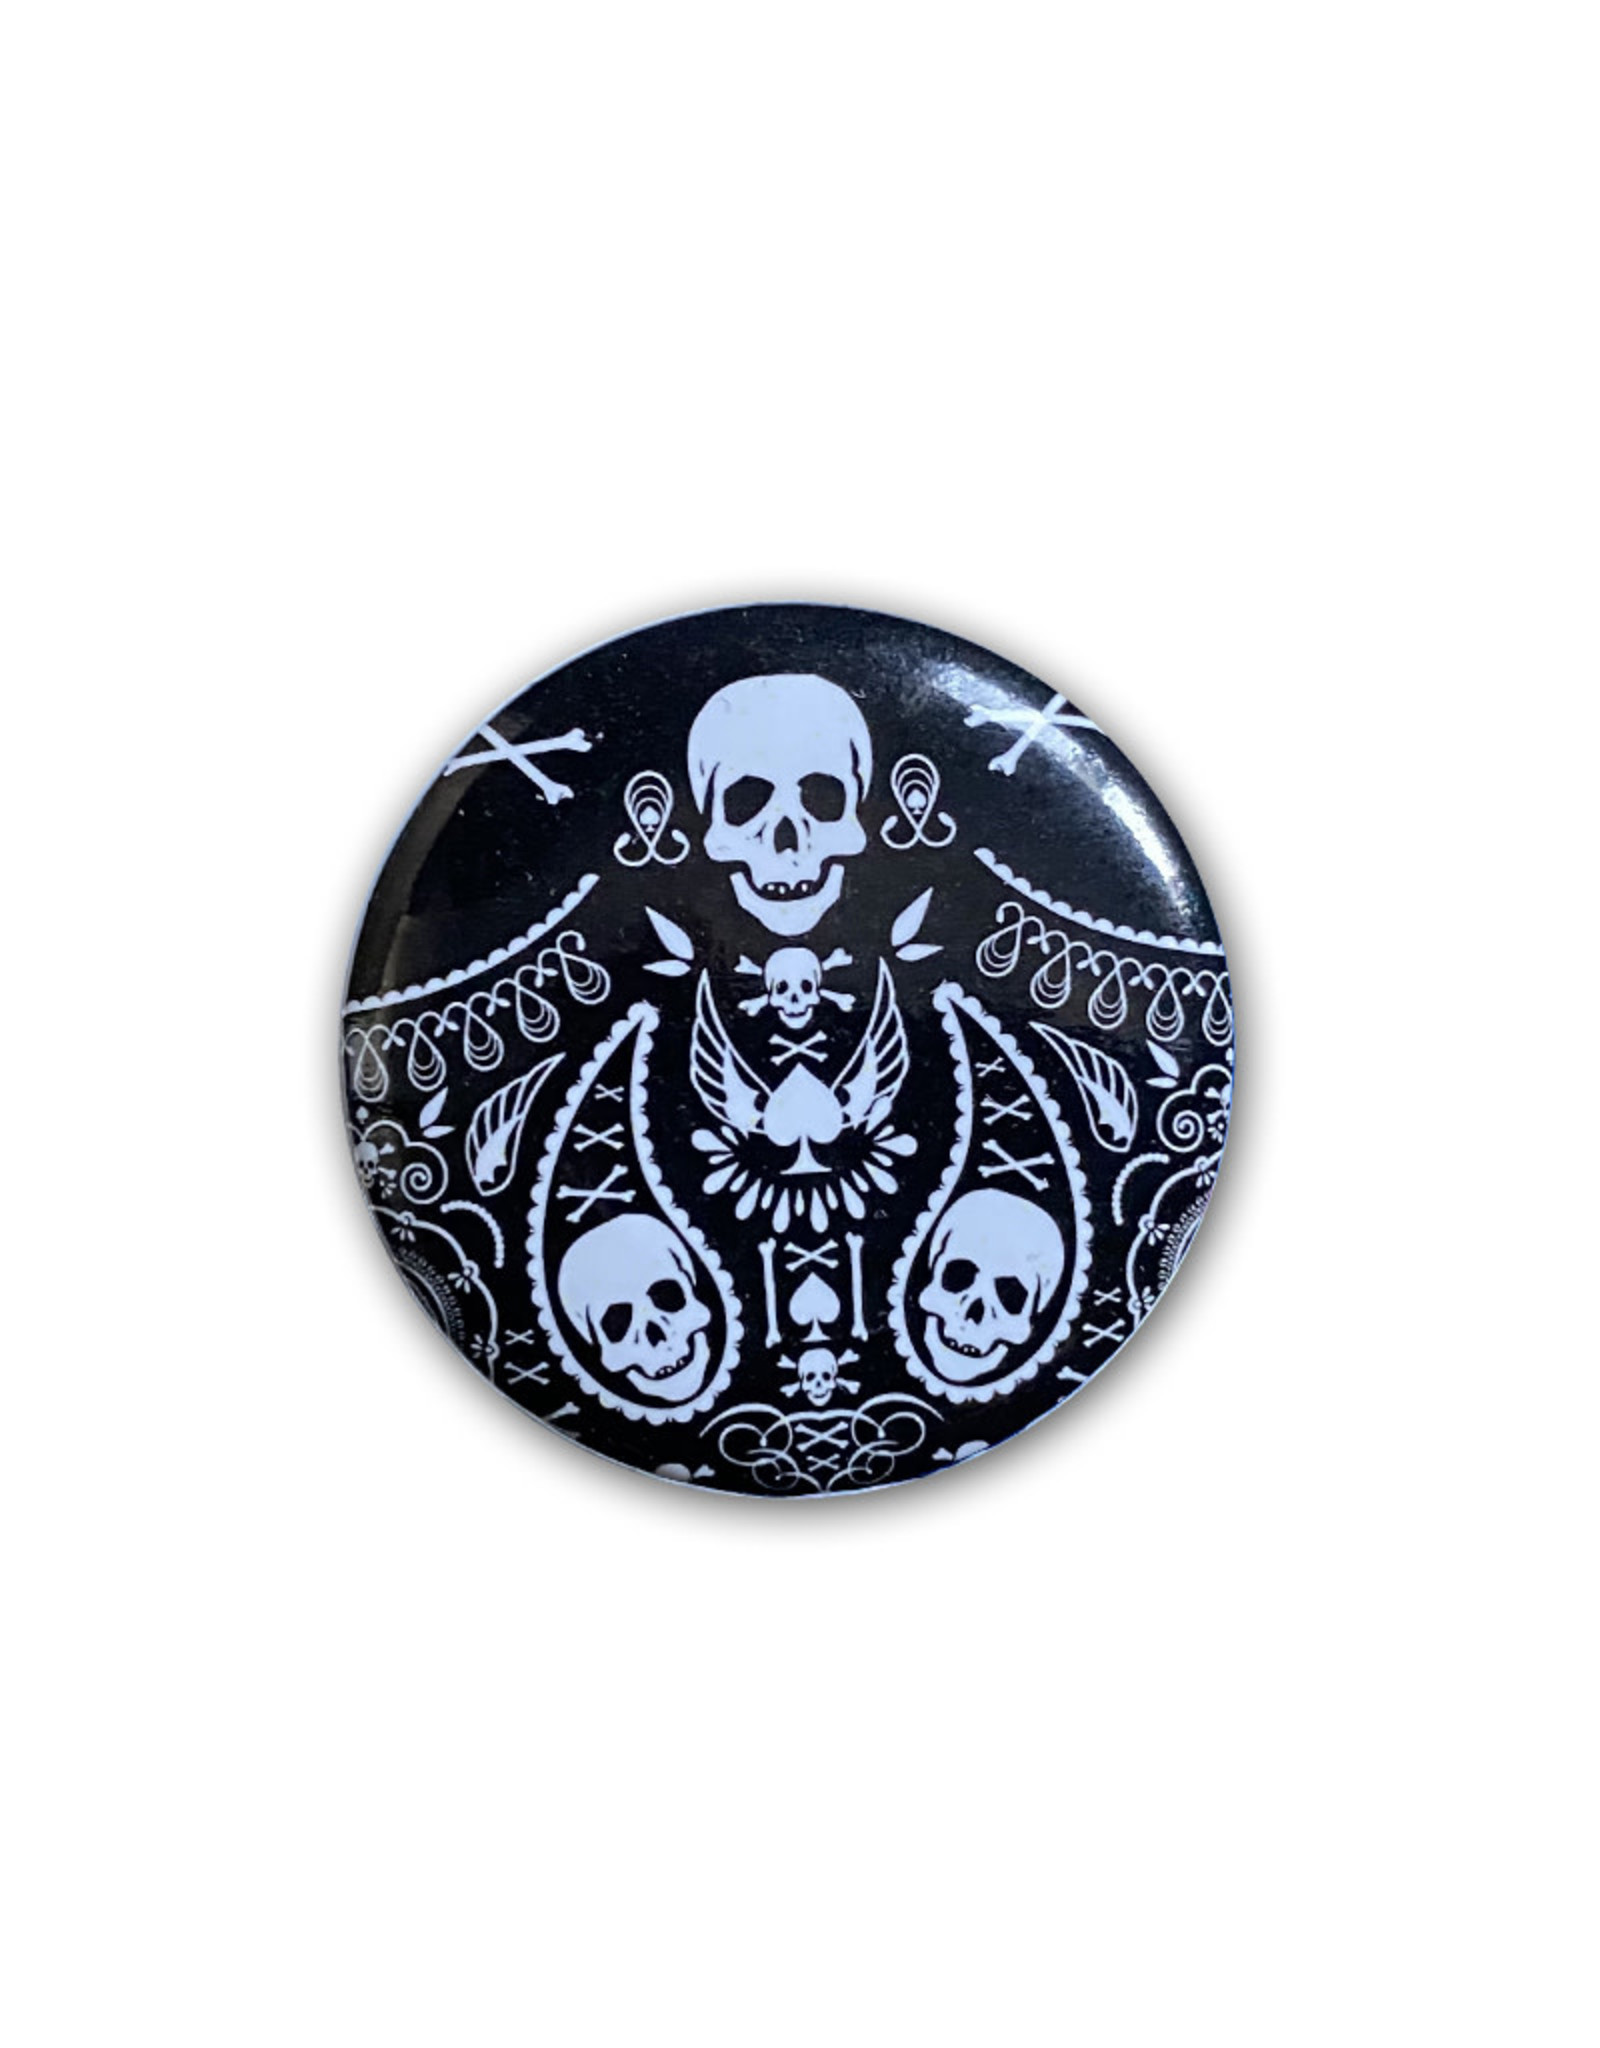 3 Skeletons ( Button )